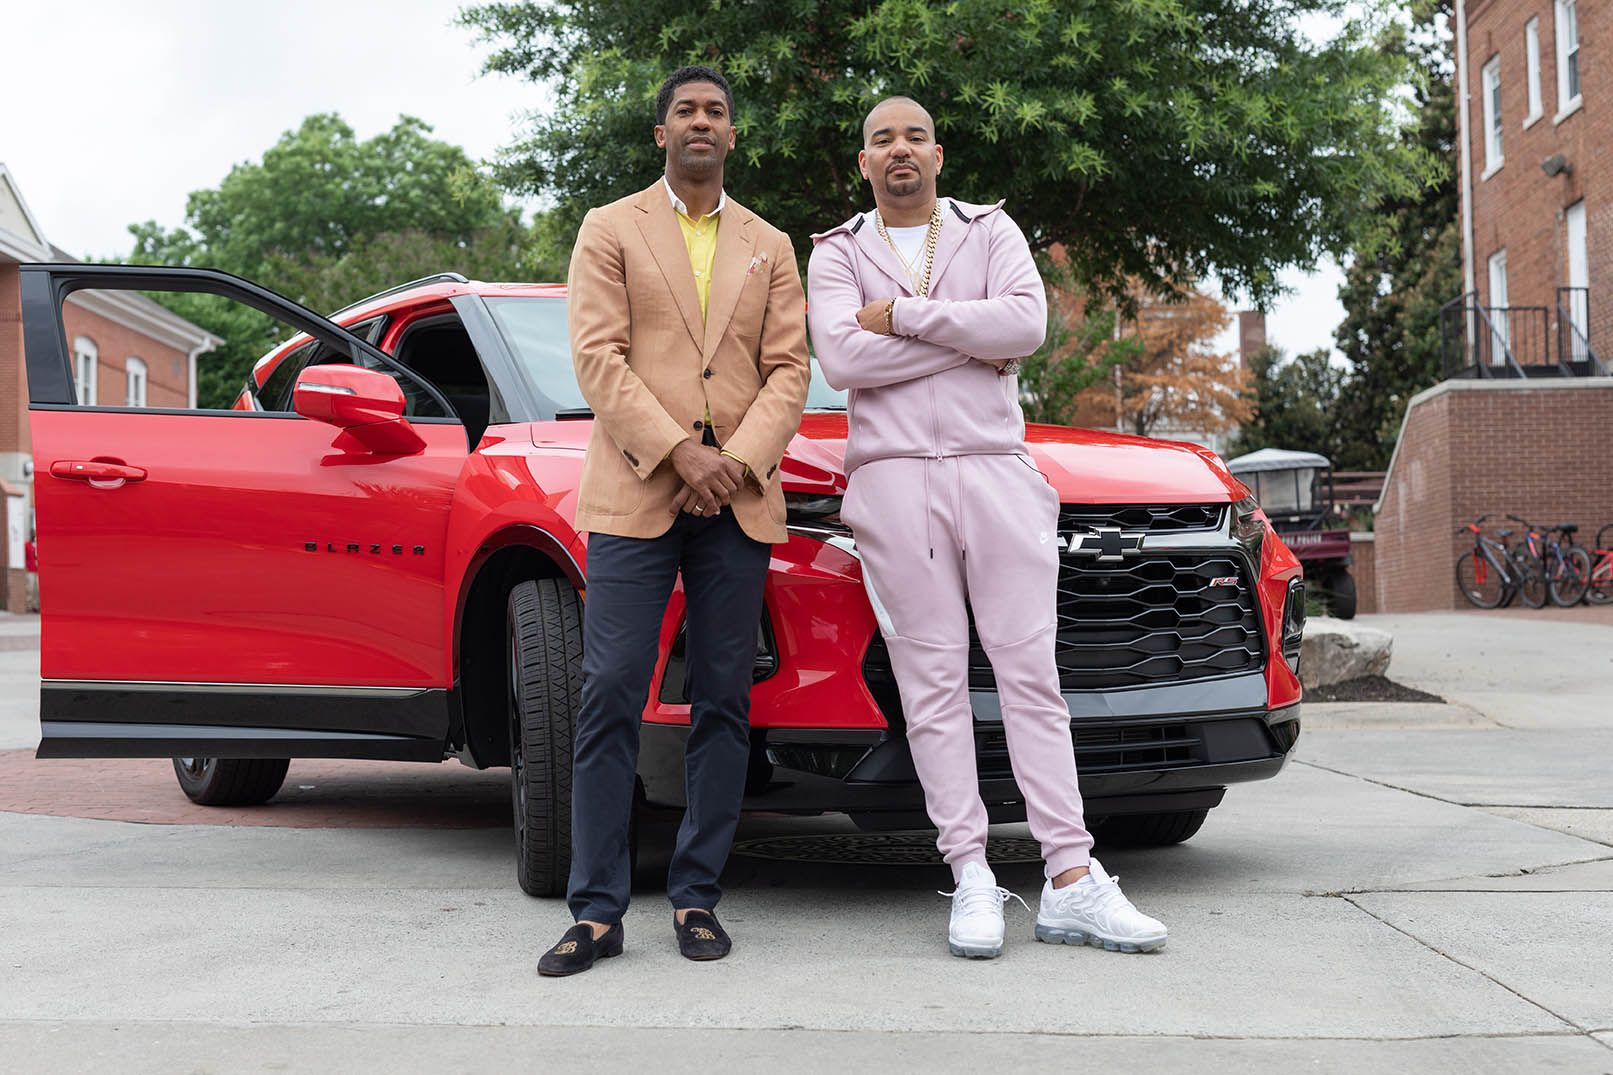 (pictured left to right) The 2019 Chevrolet Discover the Unexpected Advisor Fonzworth Bentley and Ambassador DJ Envy with the all-new 2019 Chevrolet Blazer. During this 8-week program, these two gentlemen will serve as resources and mentors to the six HBCU students who were selected from a dynamic pool of applicants.